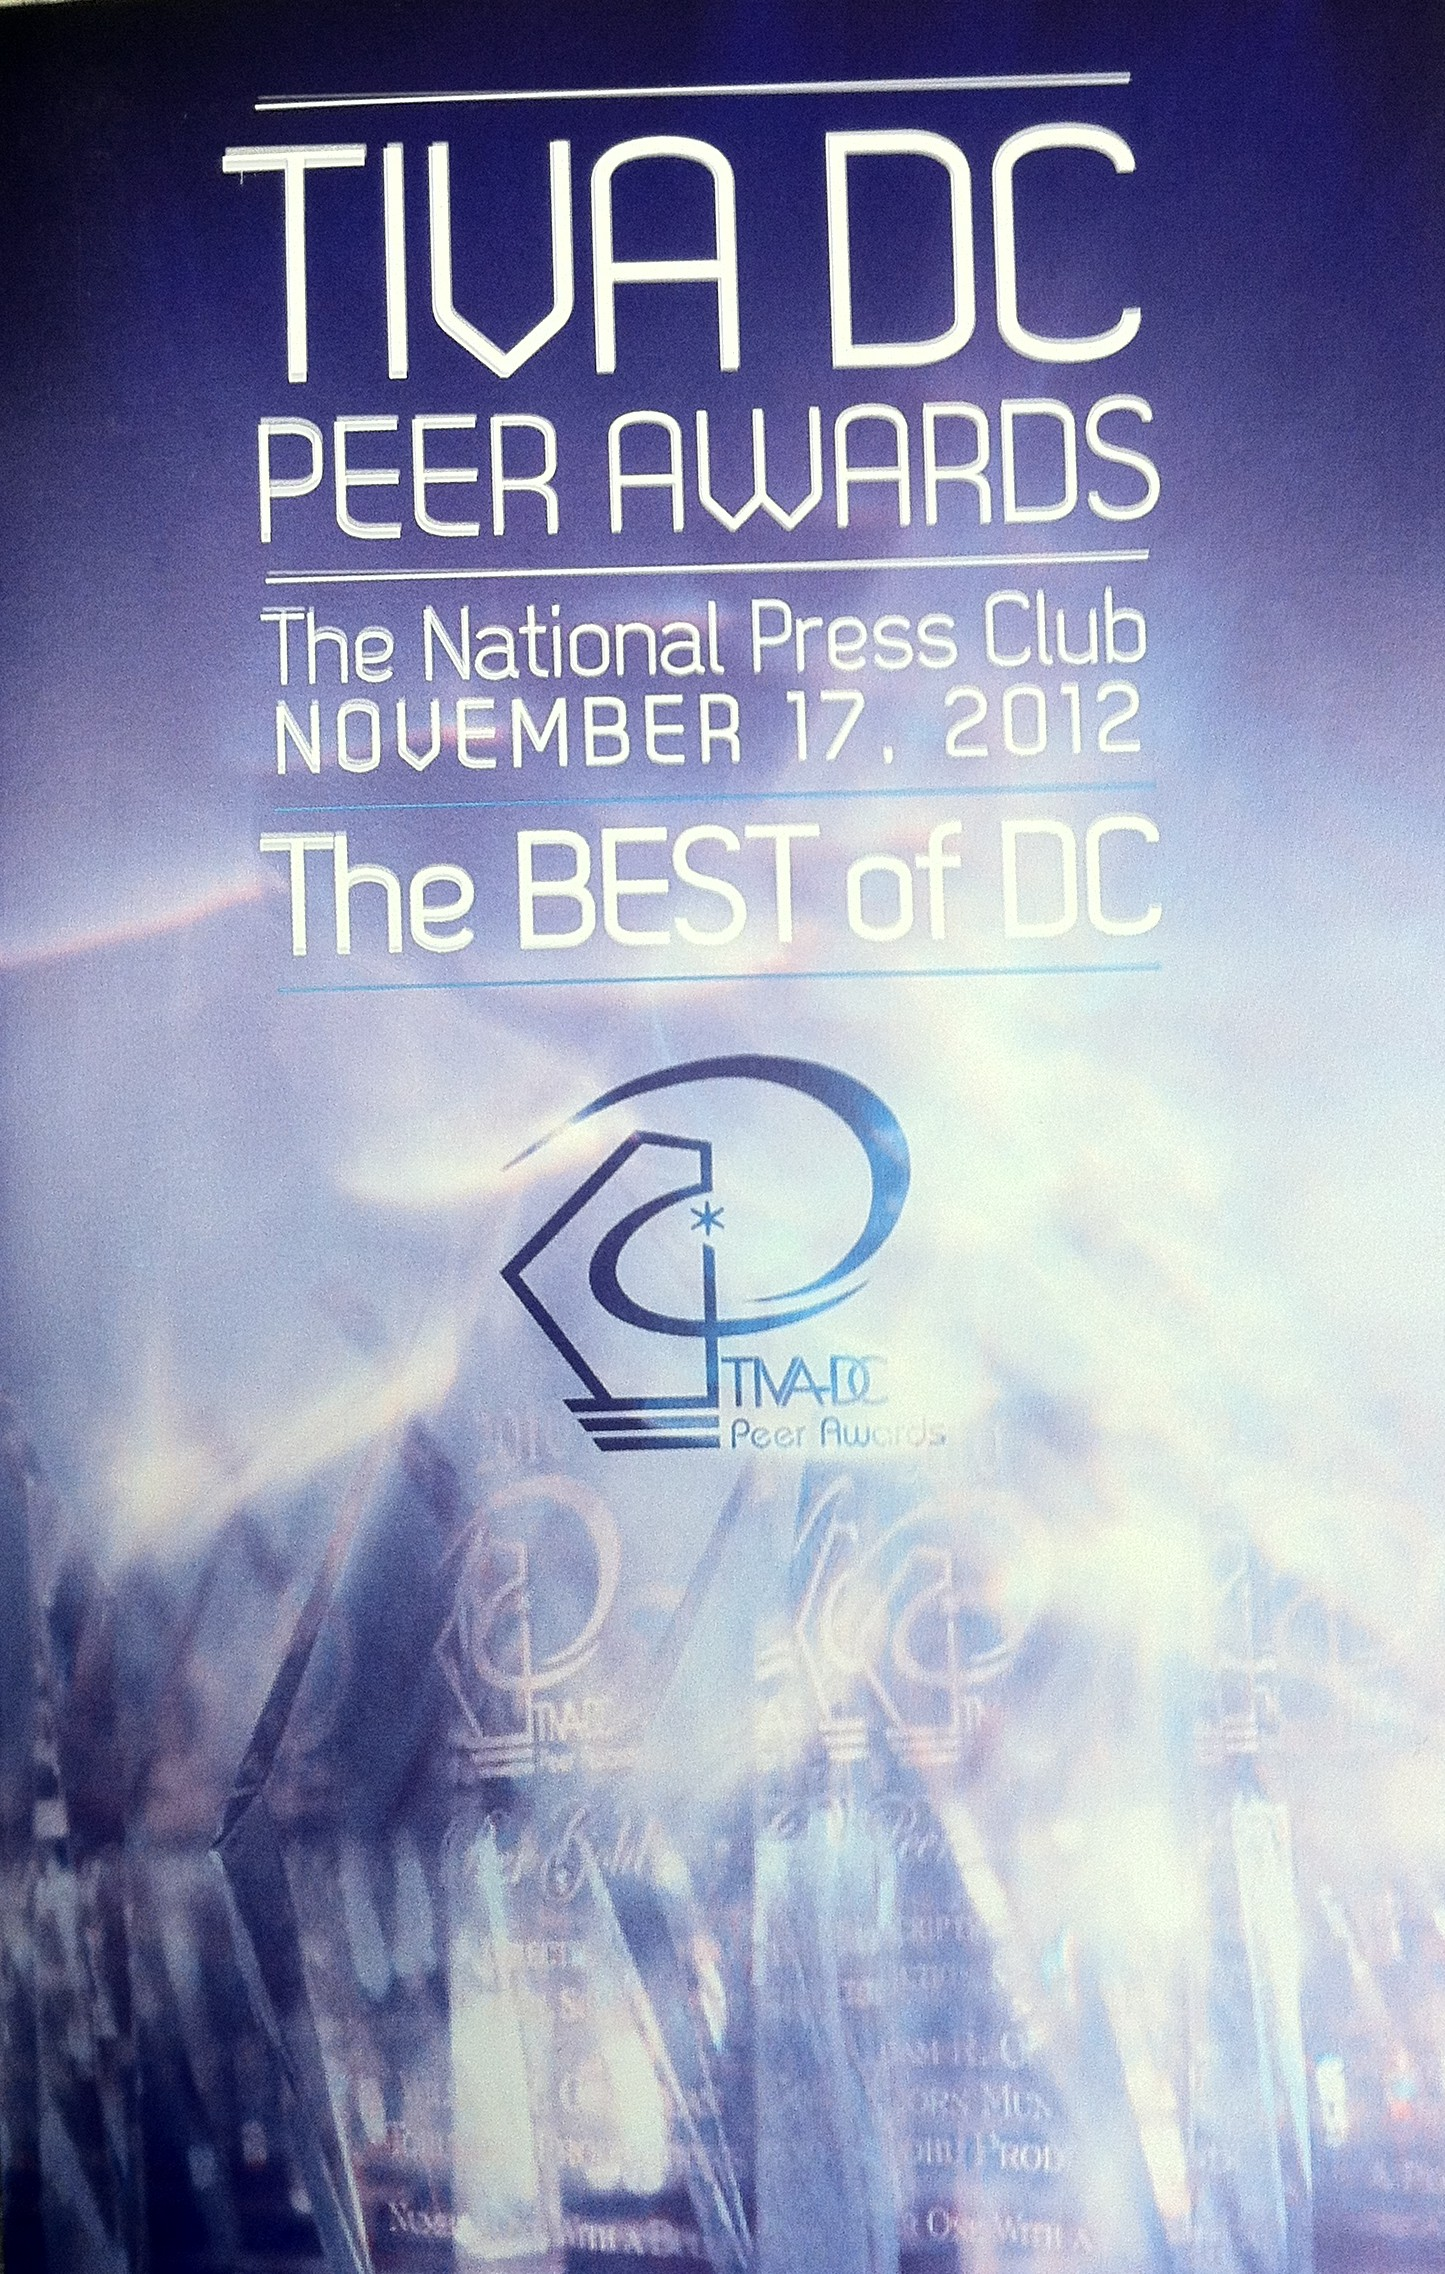 2012 Peer Awards Program